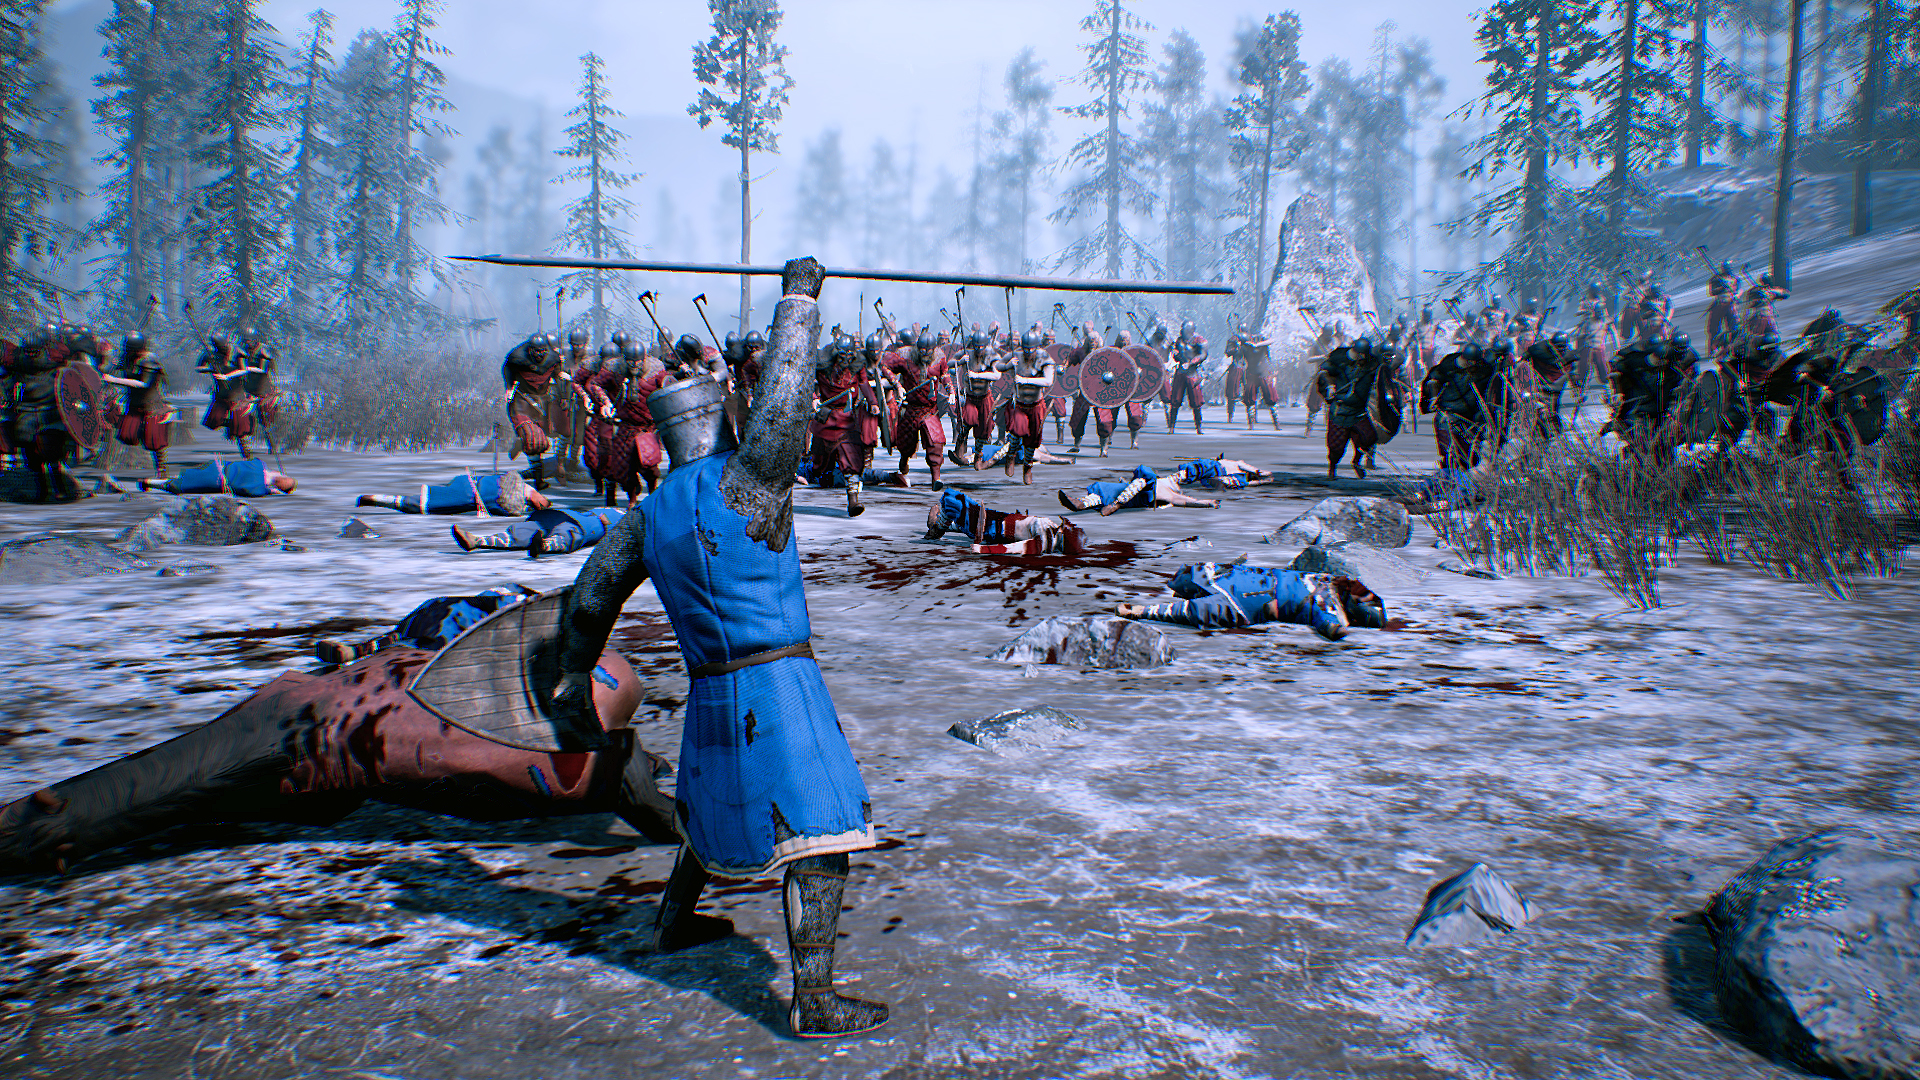 Viking RTS game Ancestors Legacy now has a free multiplayer edition